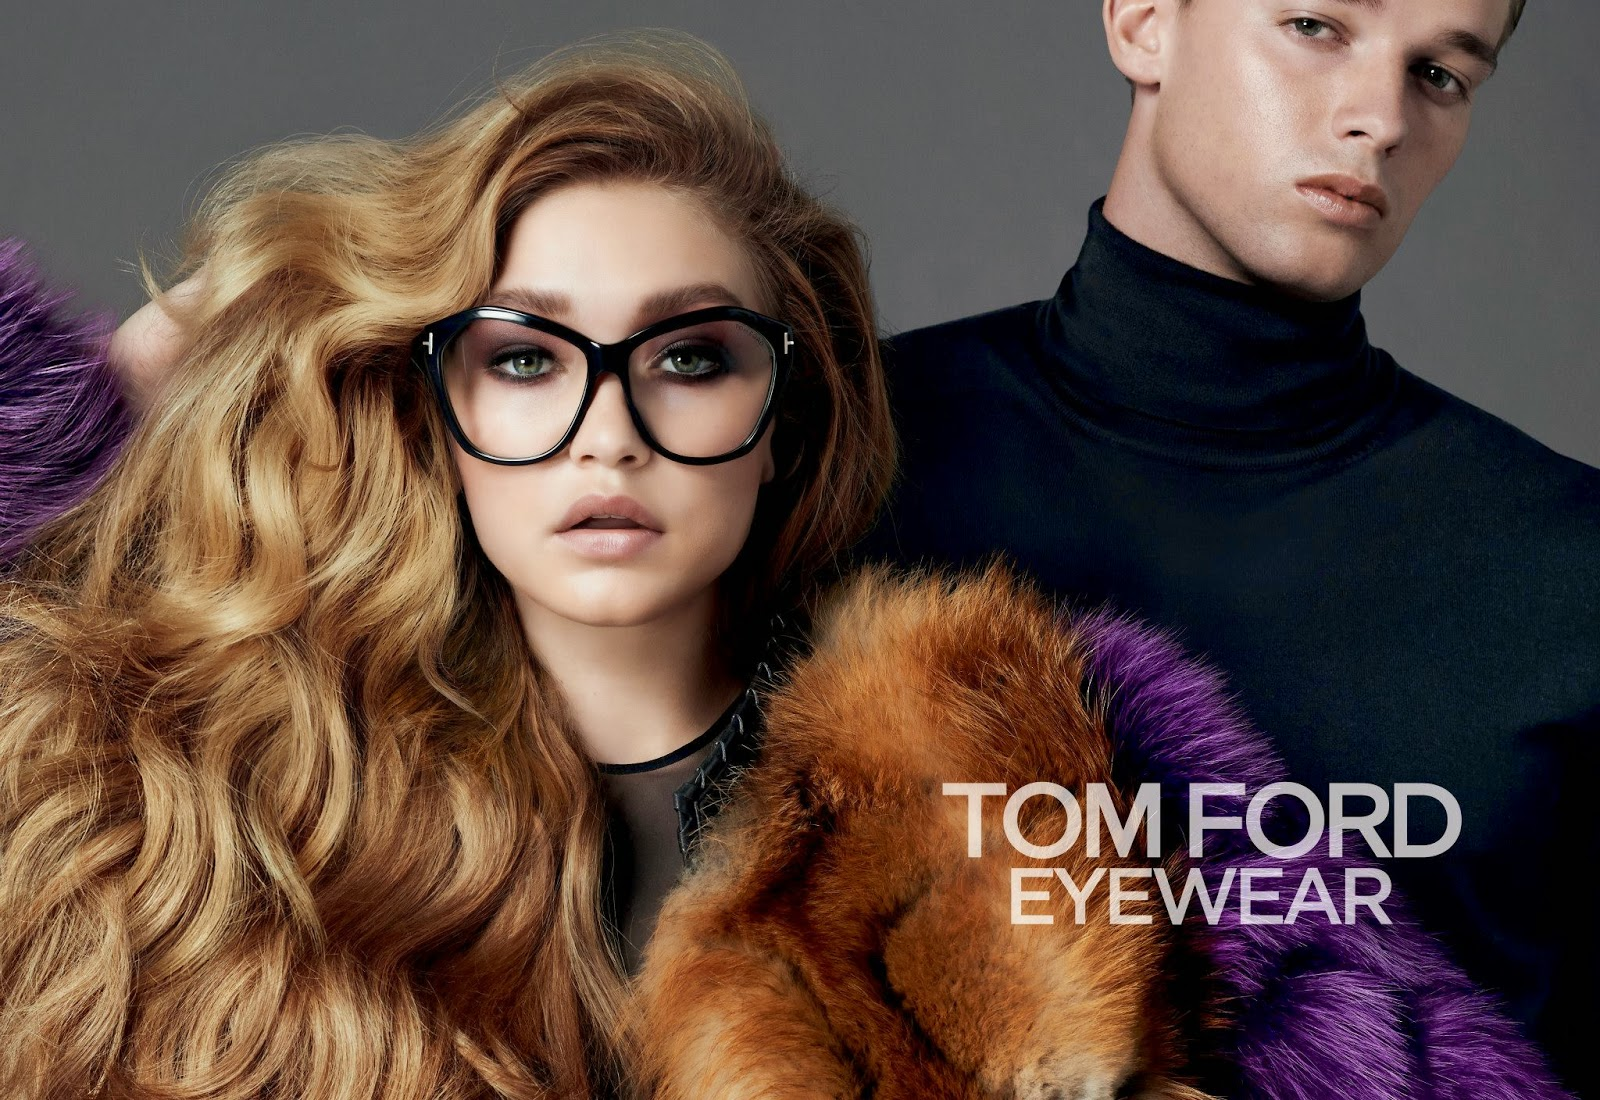 905e0cfdc21 Client  Tom Ford Eyewear Designer  Tom Ford Campaign  Fall 2014. Models   Gigi Hadid and Patrick Schwarzenegger Photographer  Johnny Dufort